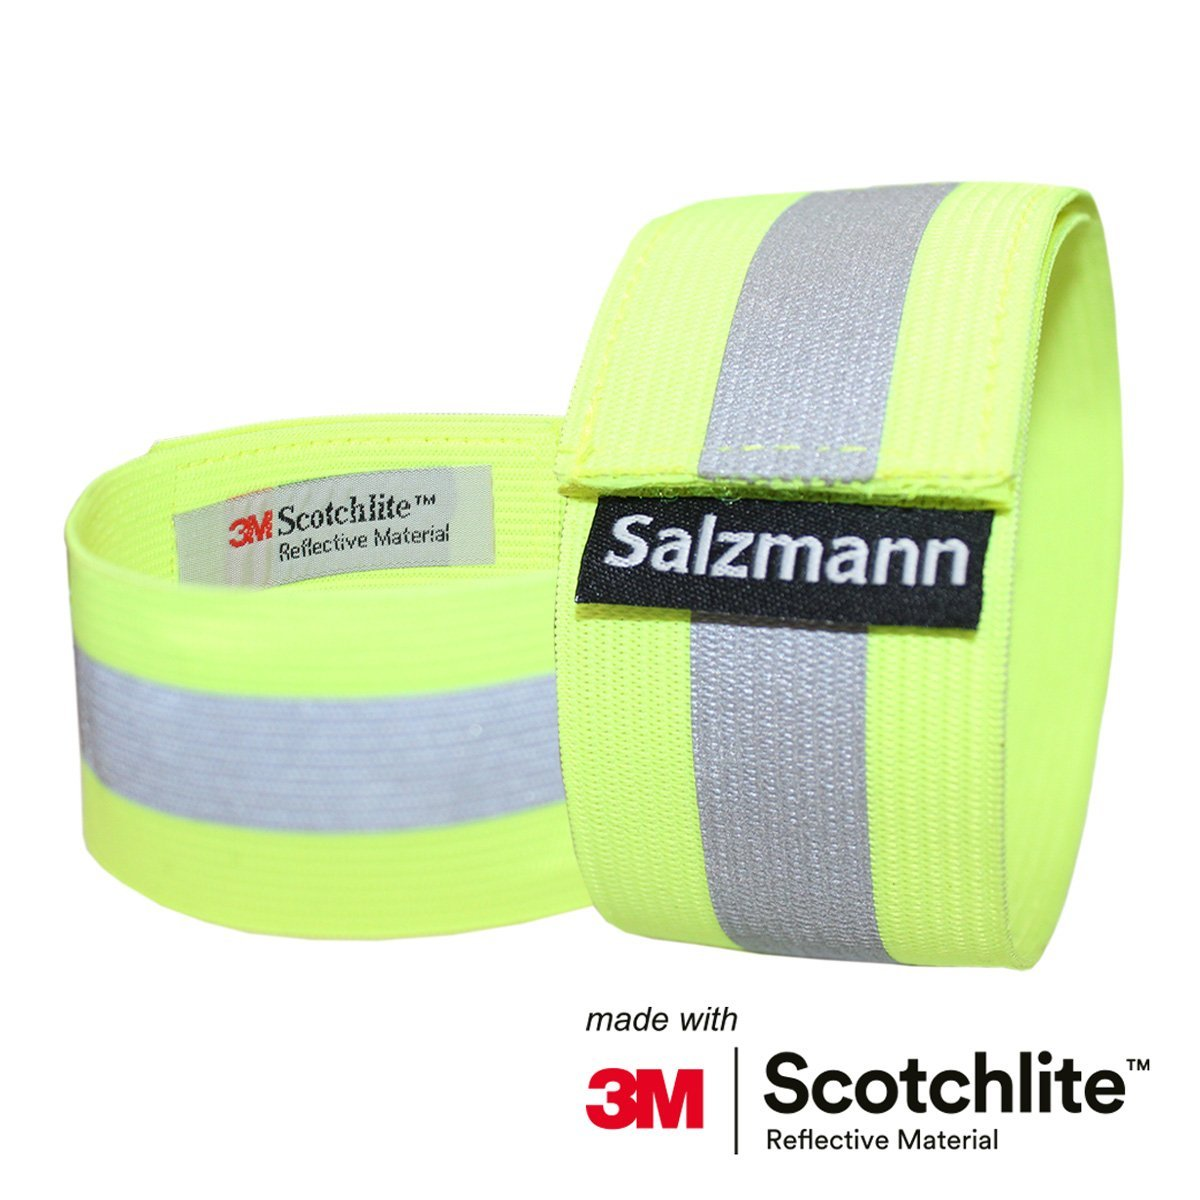 Salzmann 3M Scotchlite Reflective Elastic Arm Bands x2 Fluorescent Yellow